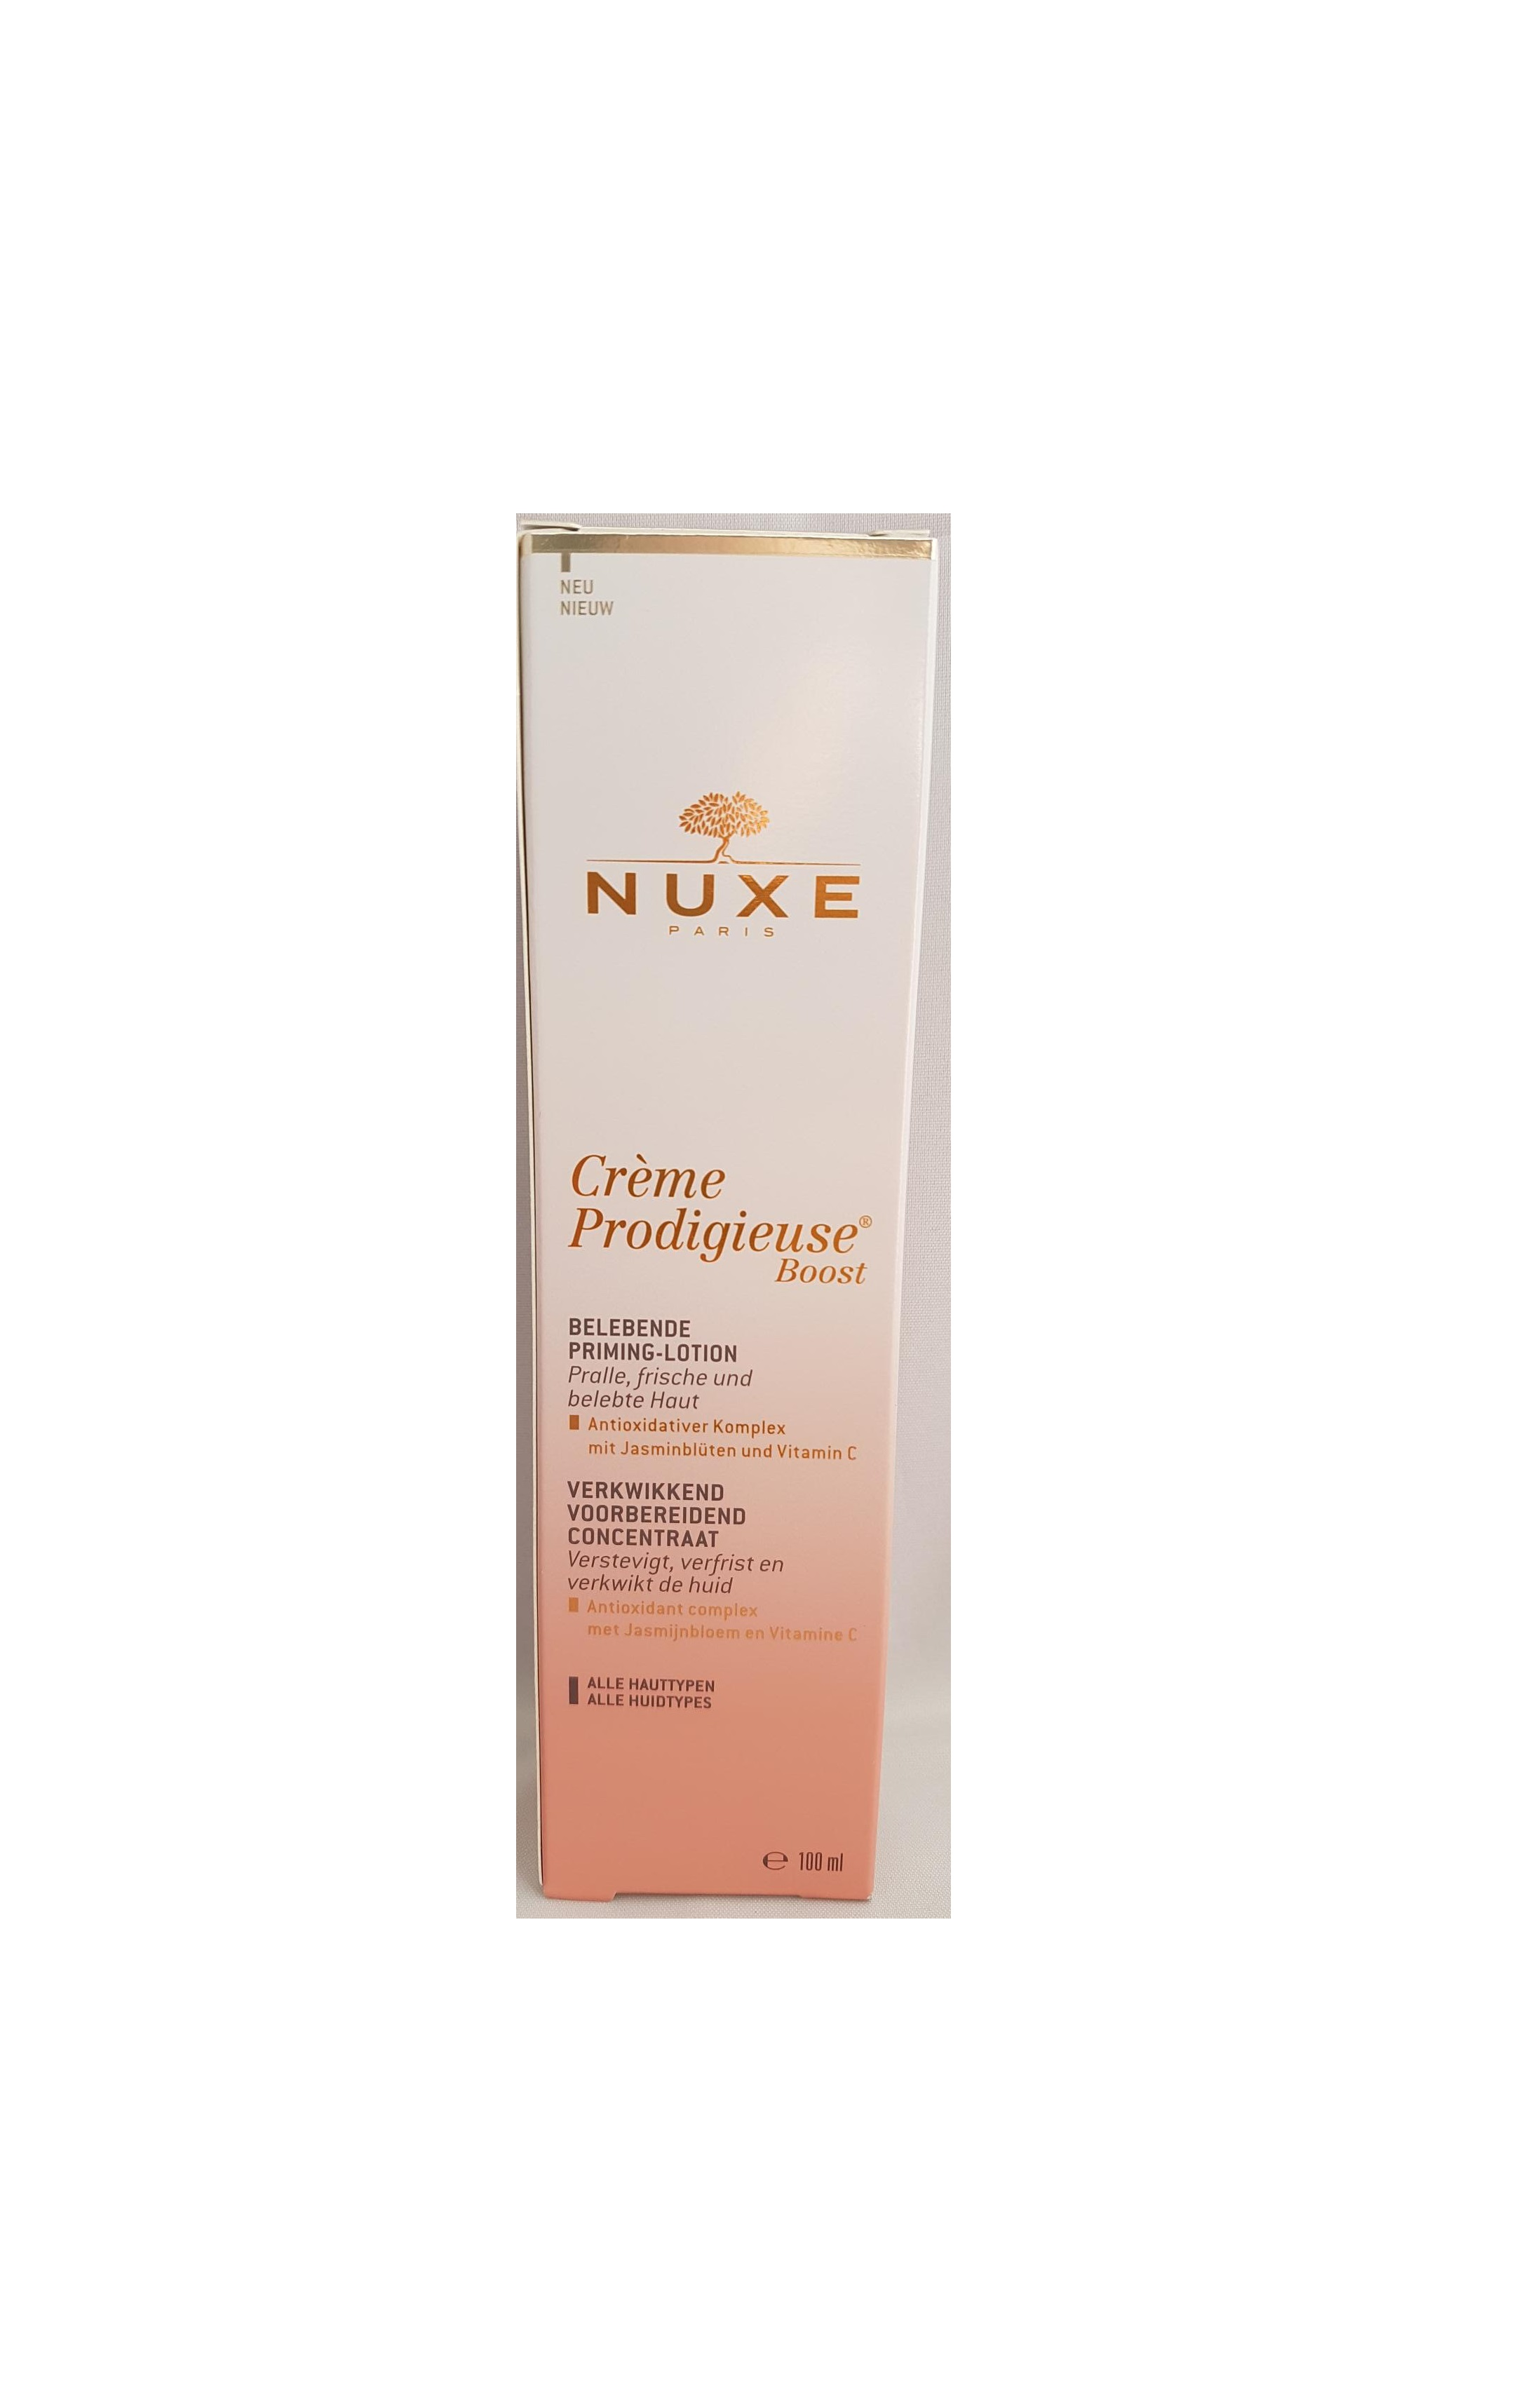 nuxe-creme-prodigieuse-boost-lotion.jpg